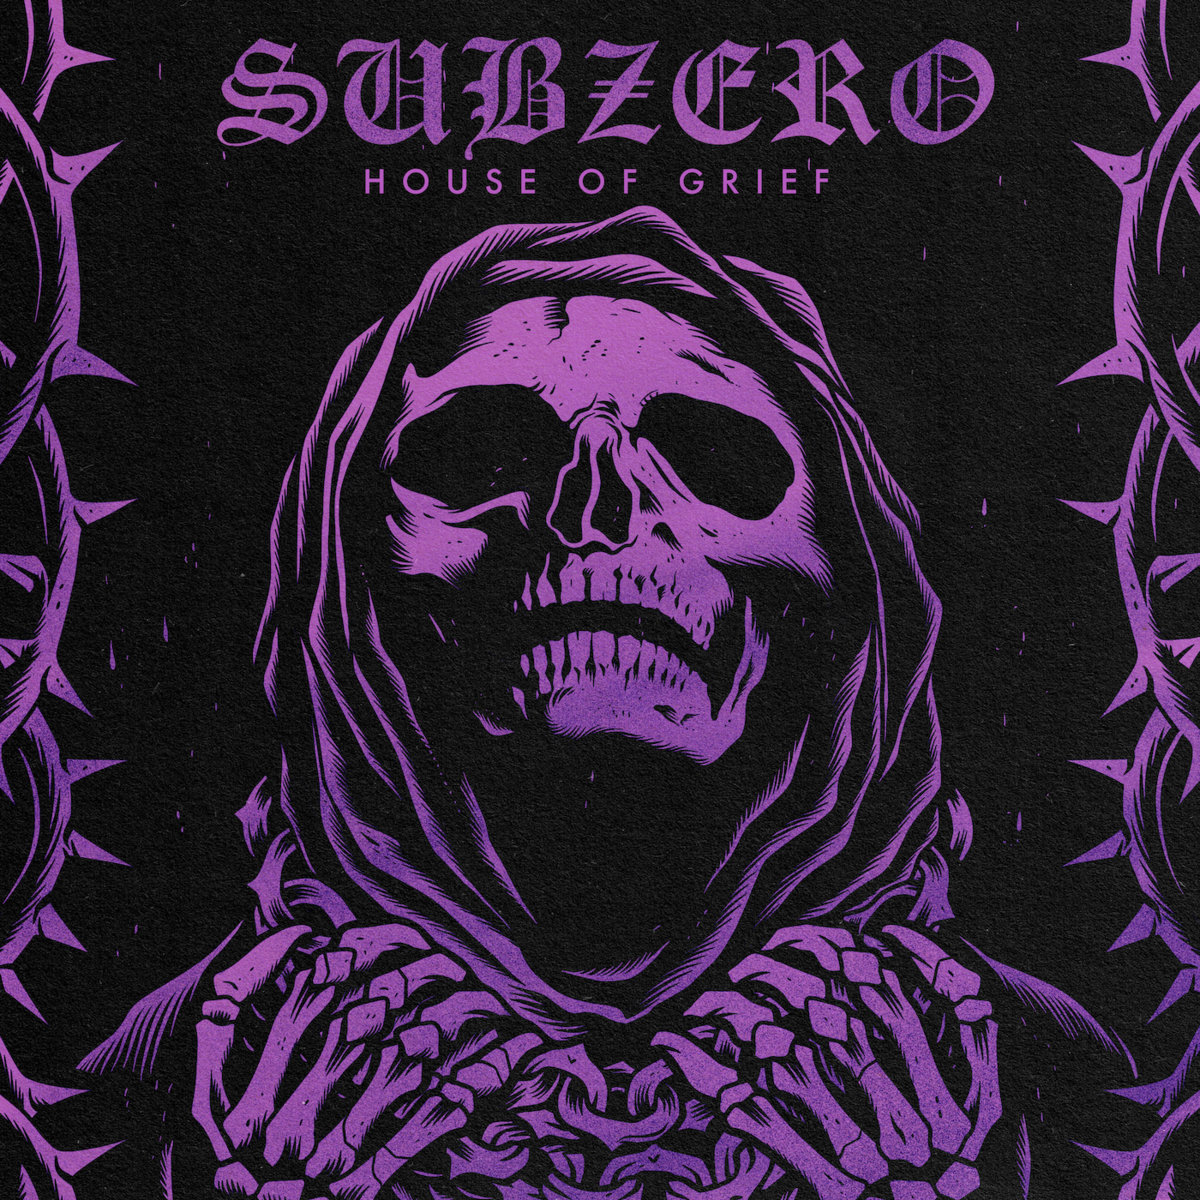 -sold out- Subzero 'House of grief' 7